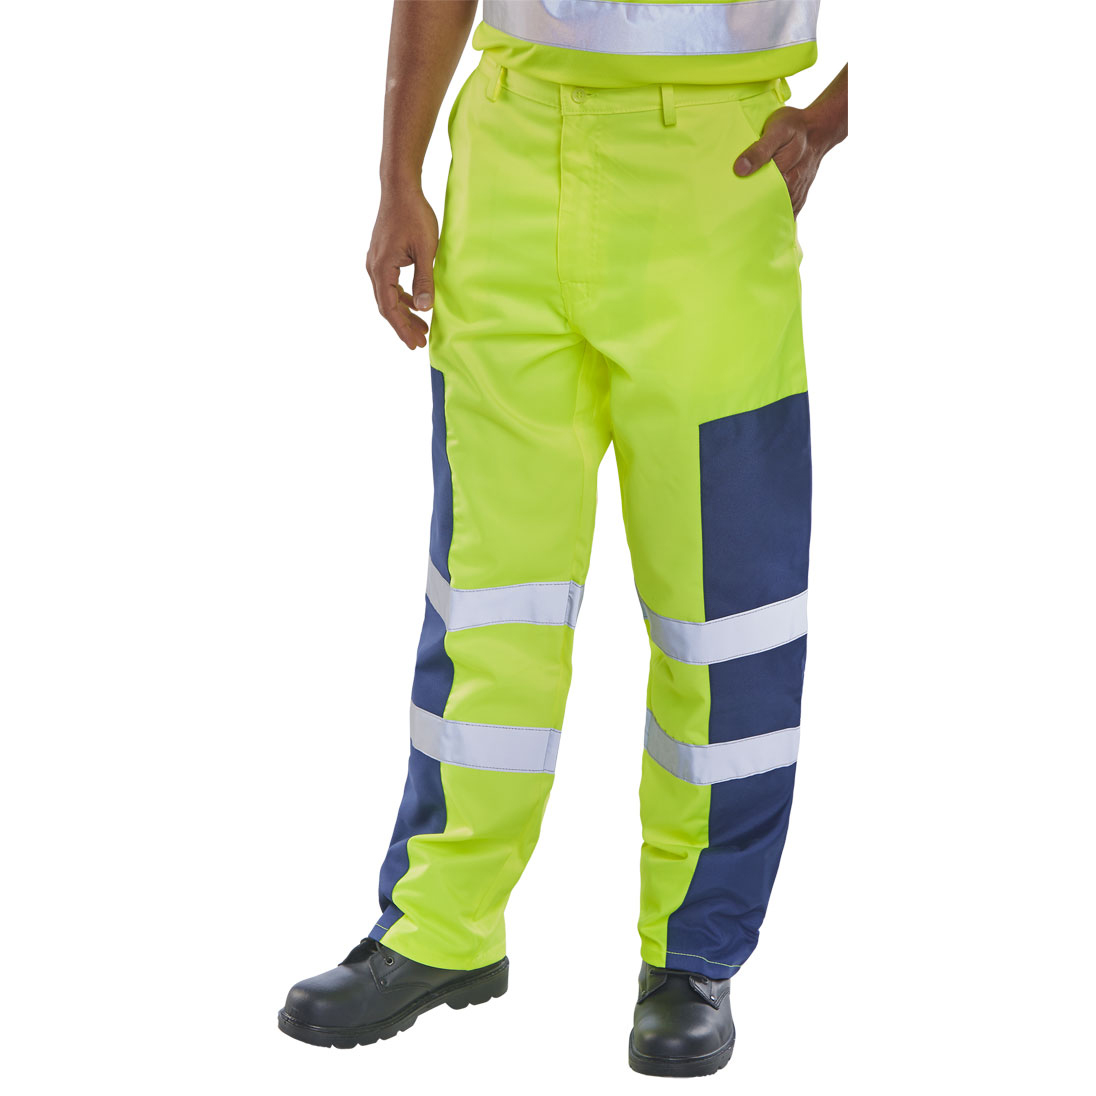 Click Workwear Trousers Hi-Vis Nylon Patch Yellow/Navy Blue 32 Ref PCTSYNNP32 Up to 3 Day Leadtime